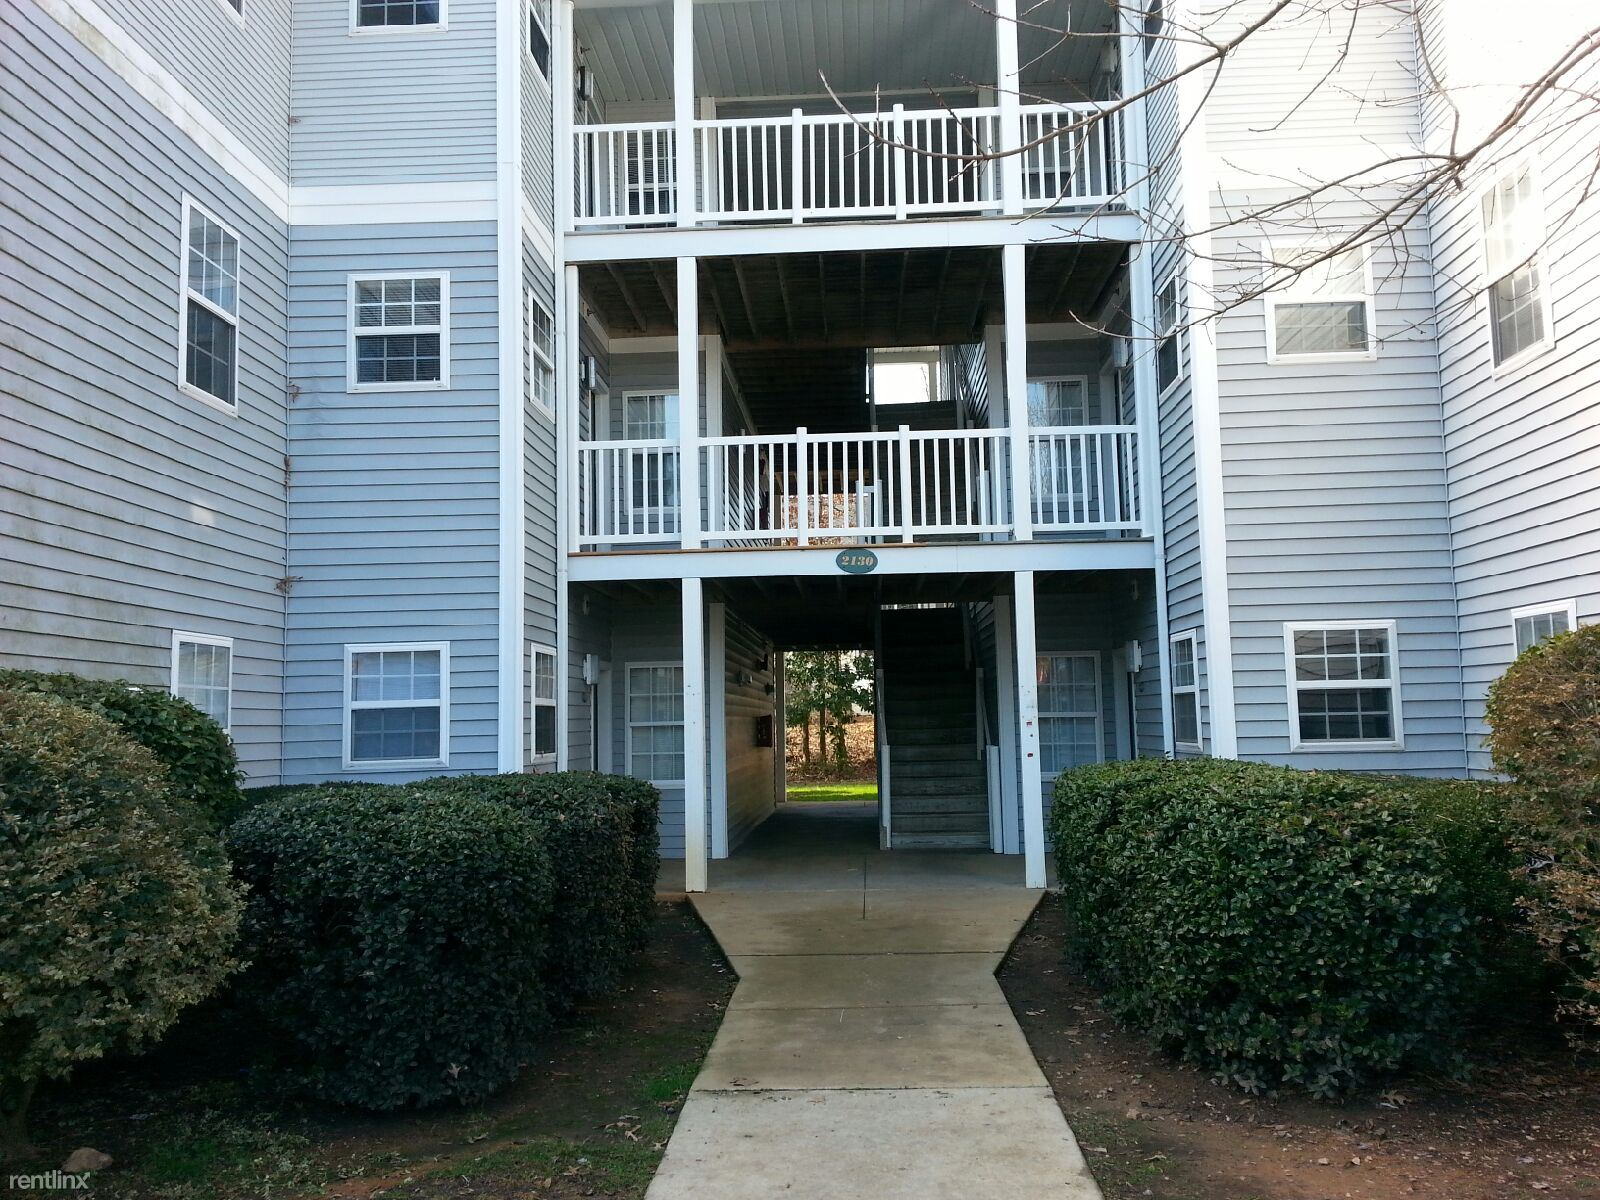 2100 Wolftech Ln Apt 204, Raleigh, NC - $465 USD/ month